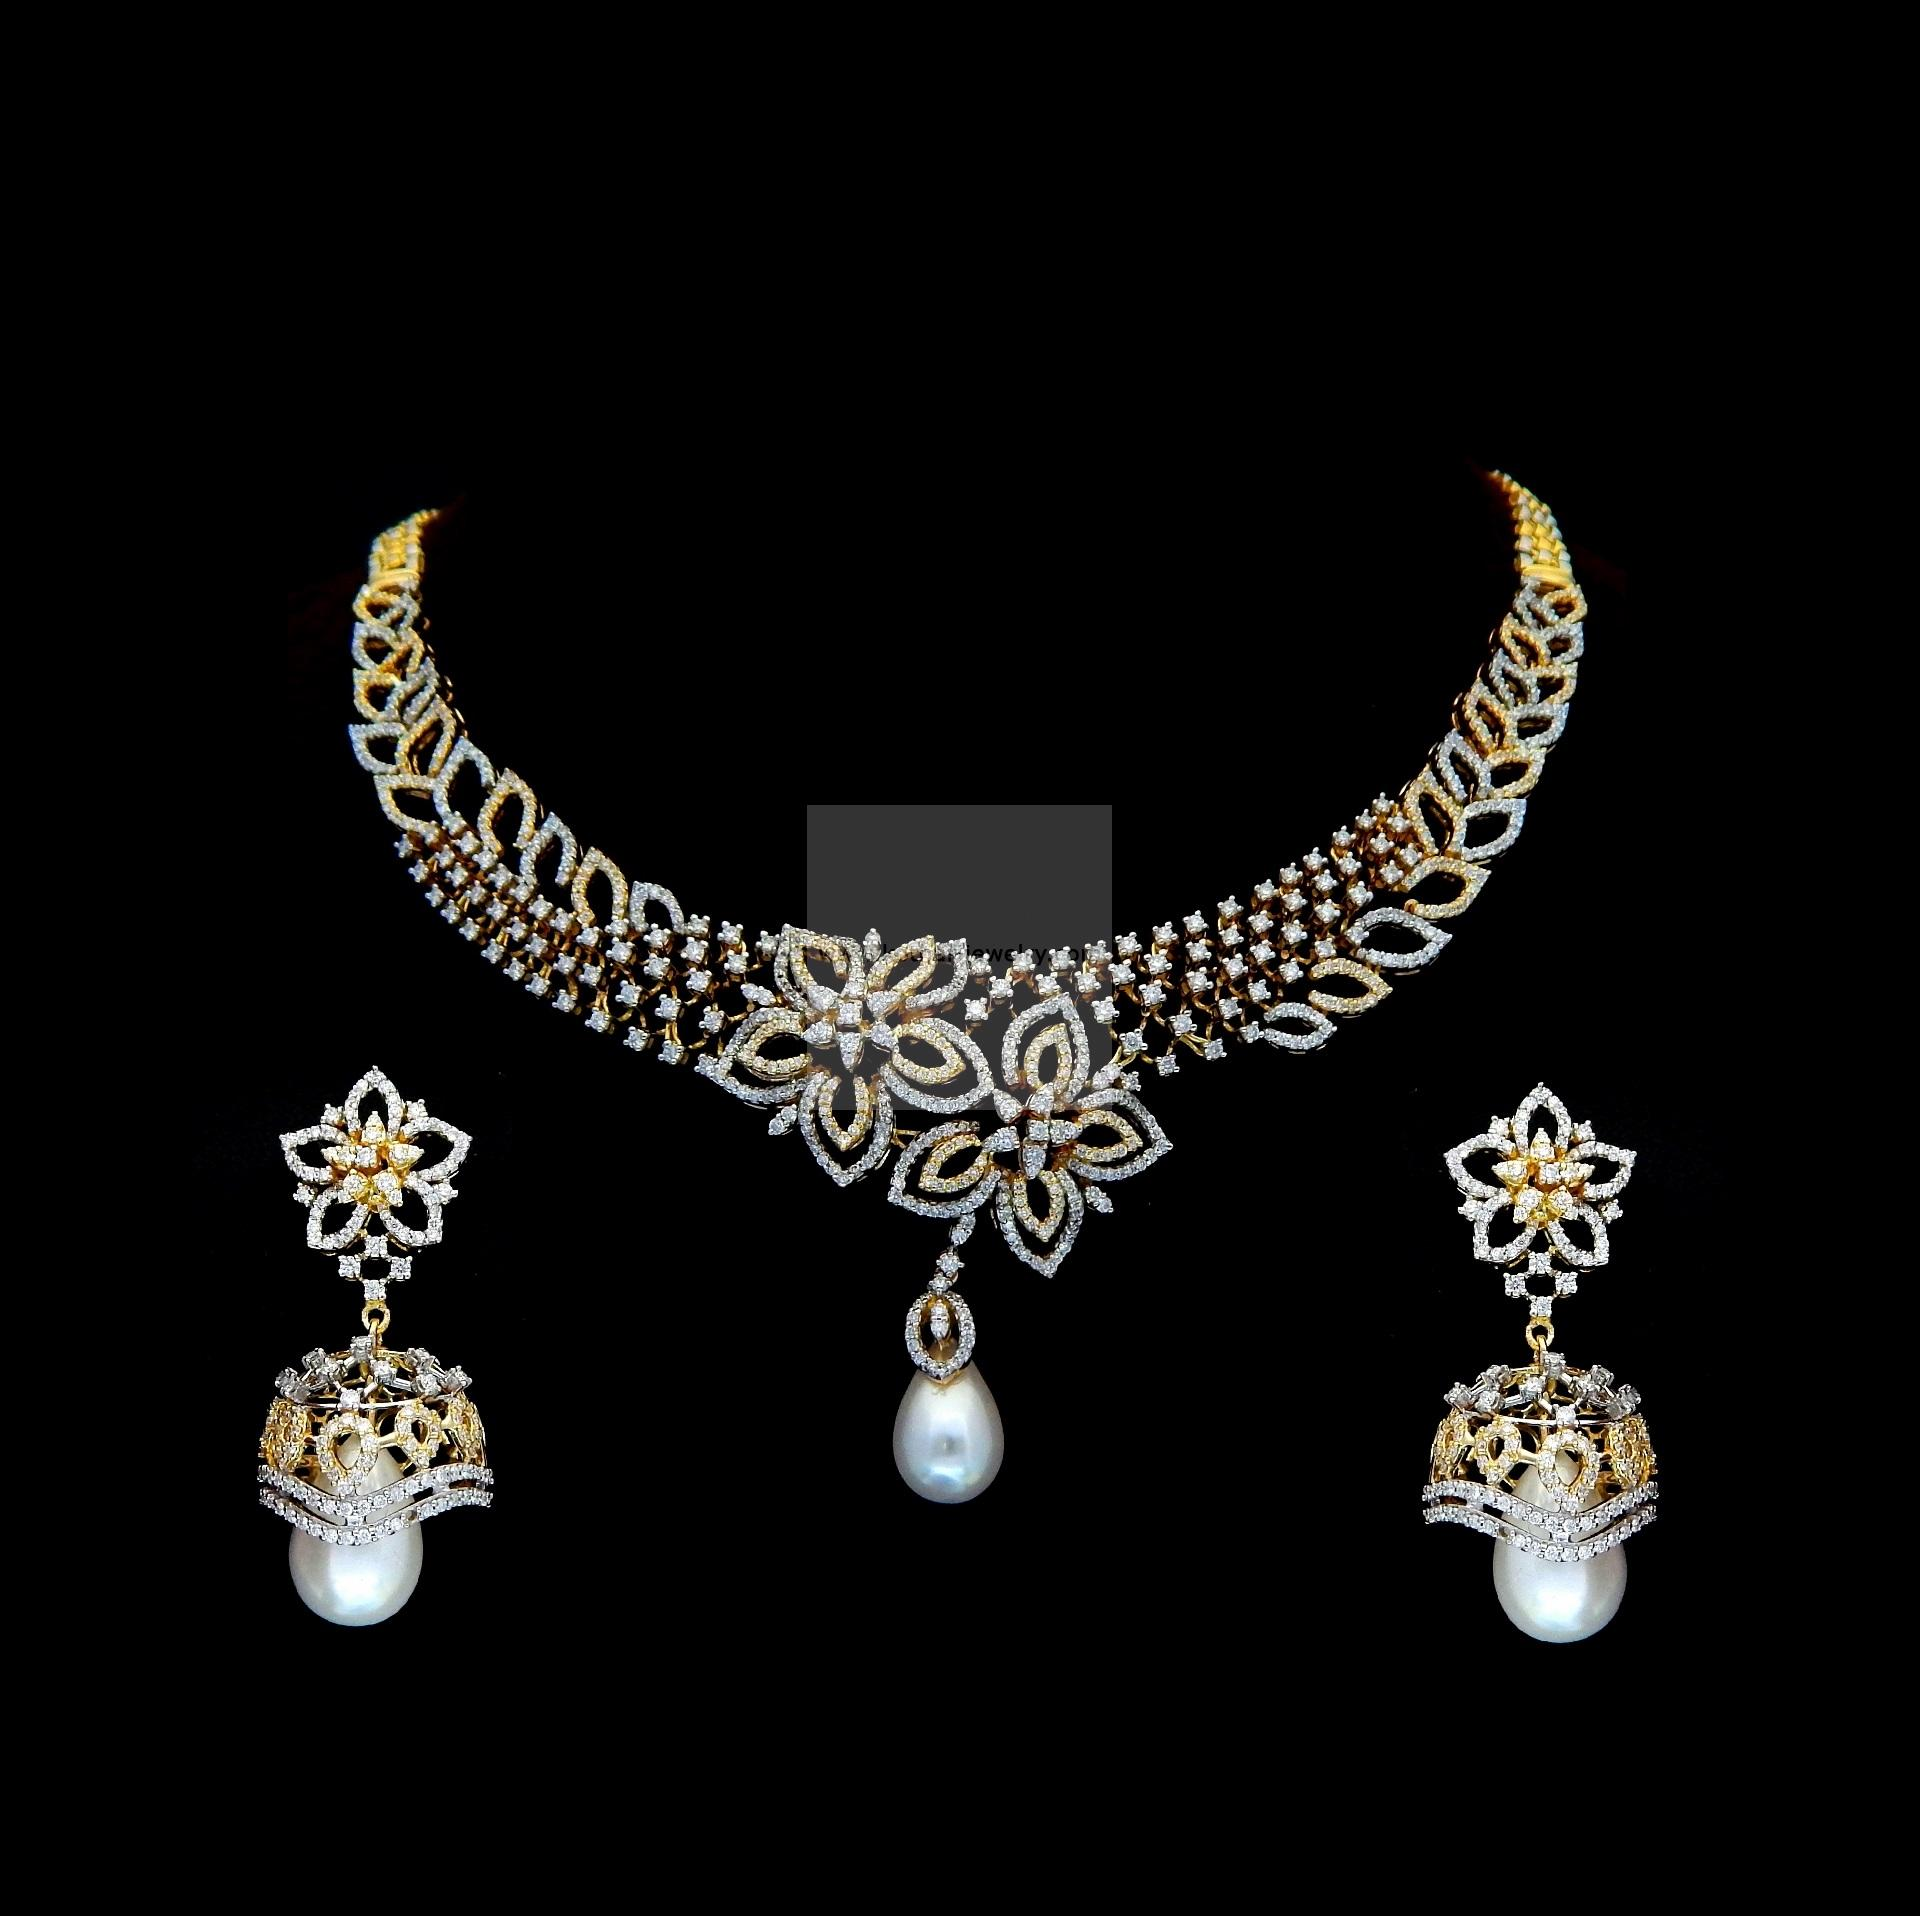 dsc akoya and brooch japanese diamond primary vvs products attached platinum estate pearl necklace